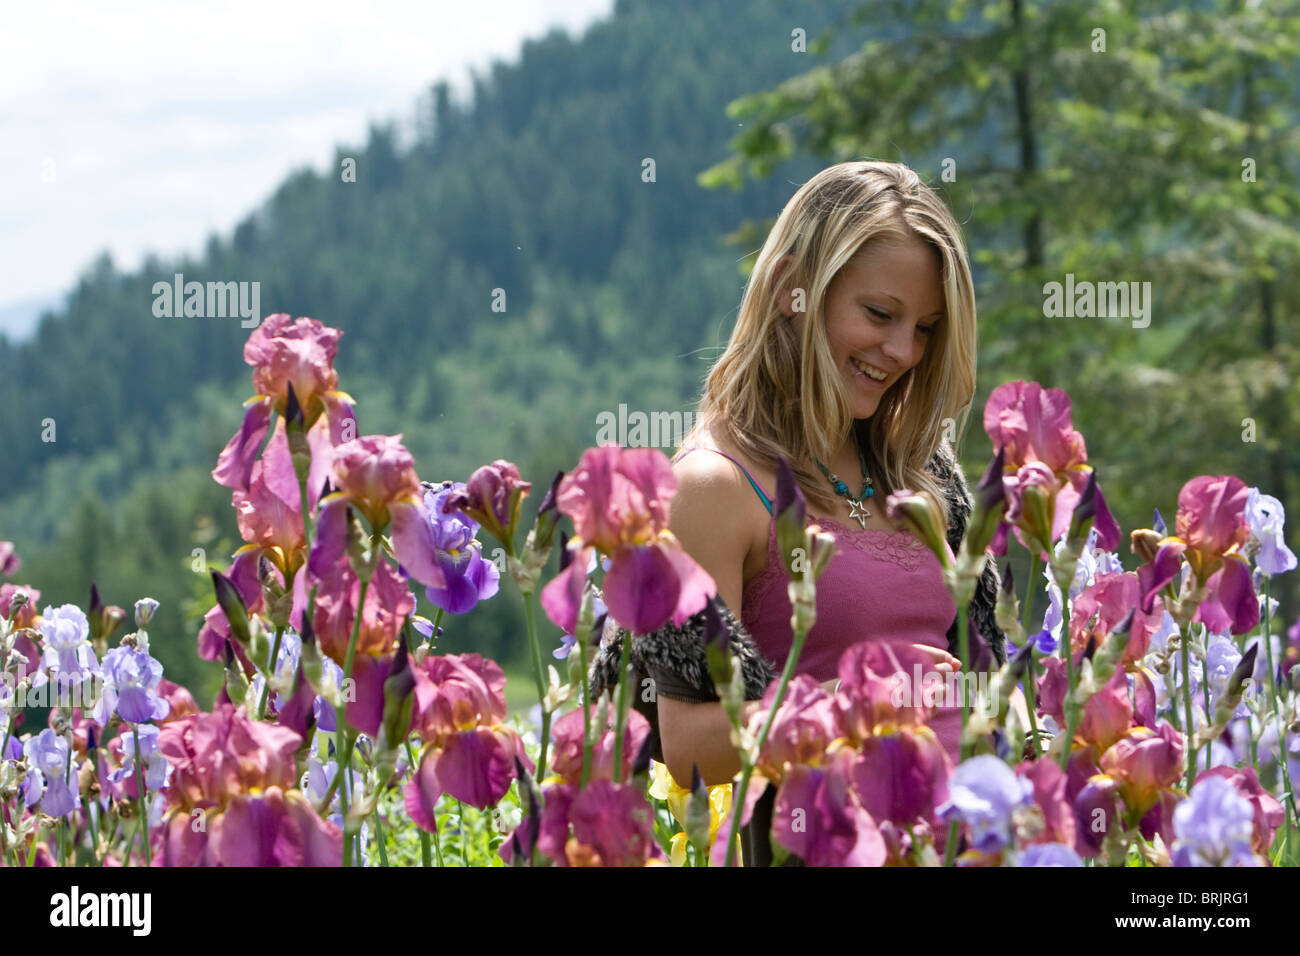 Girl stands in a field of flowers while smiling. - Stock Image